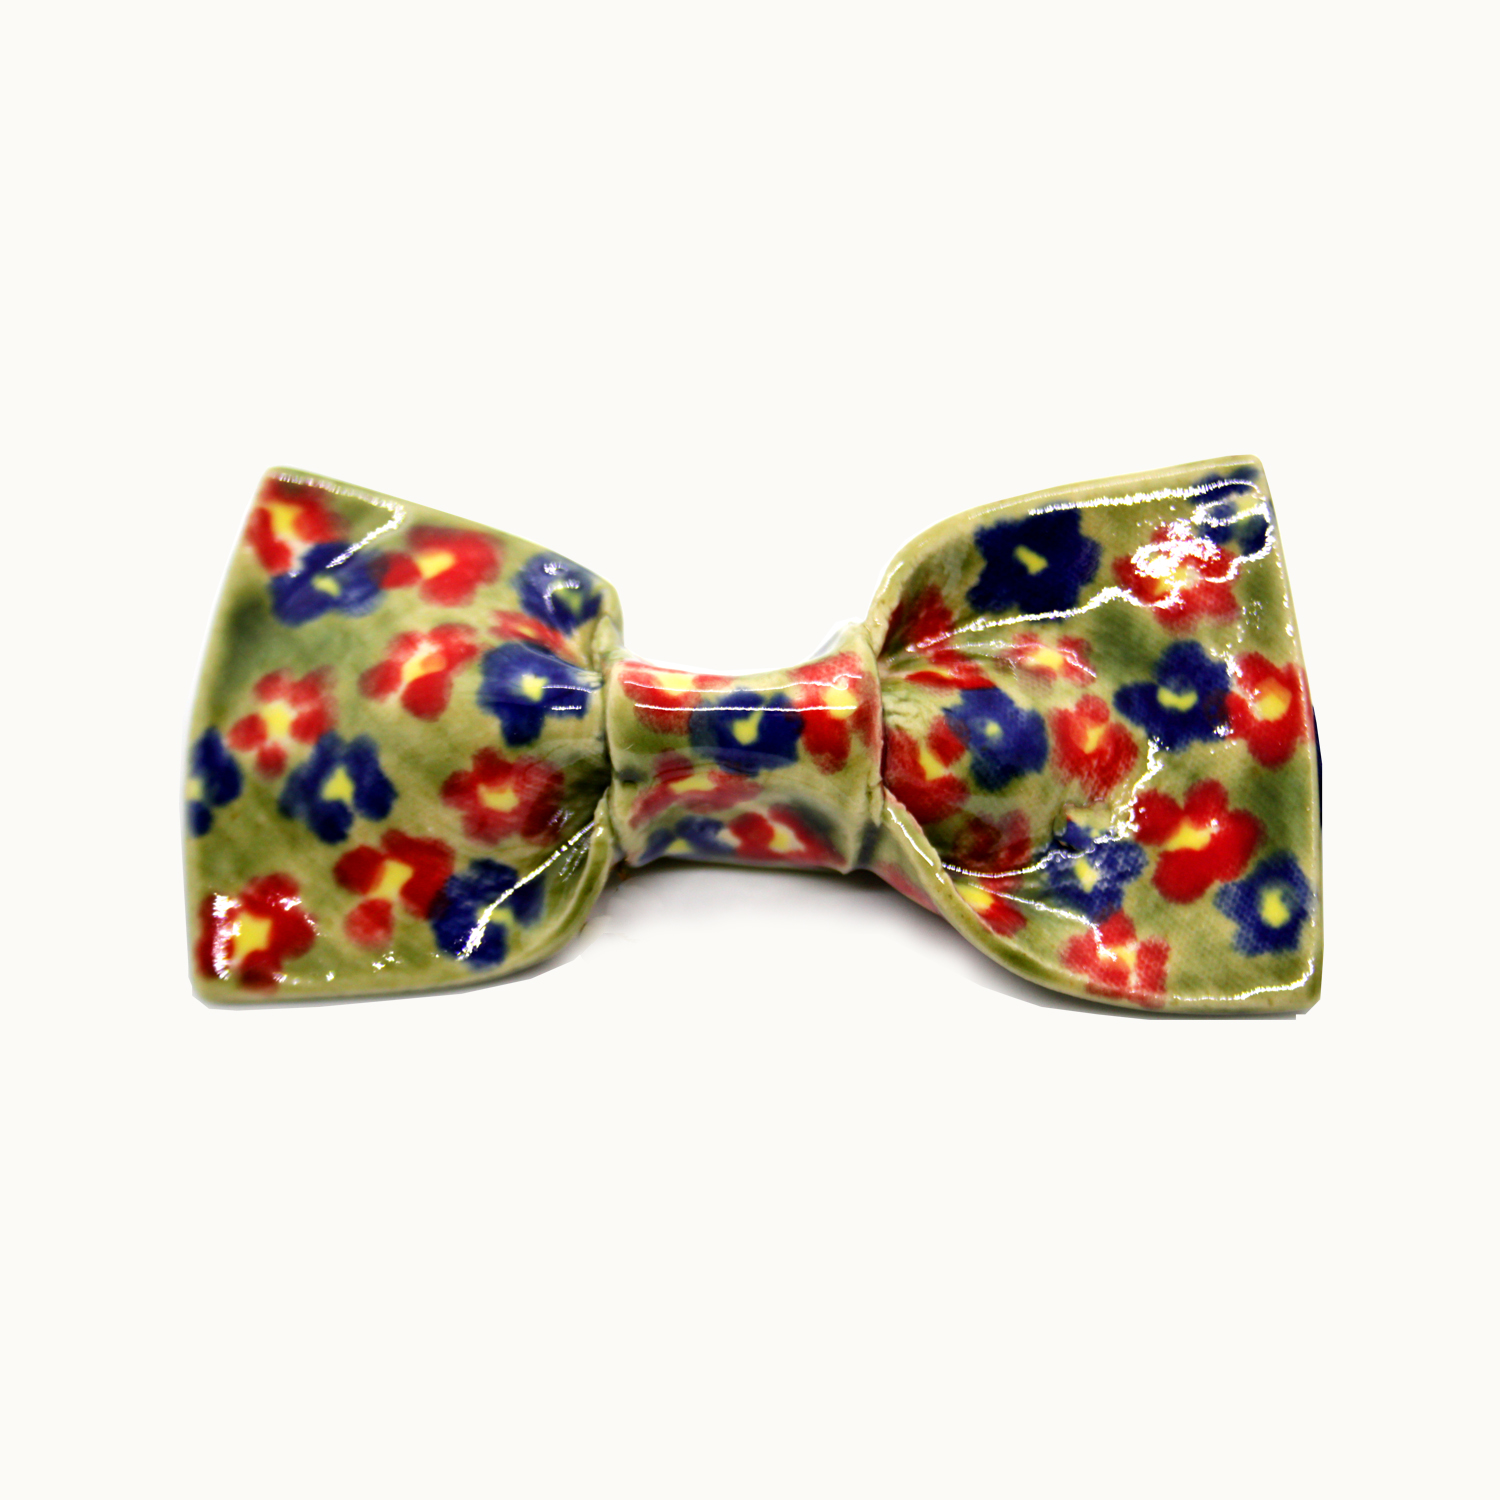 Pajarita hecha a mano en cerámica Bowtery Primavera original y exclusiva con flores azules rojas verdes y amarillas. Handmade ceramic colourful bow tie yellow blue red green flowers patterned